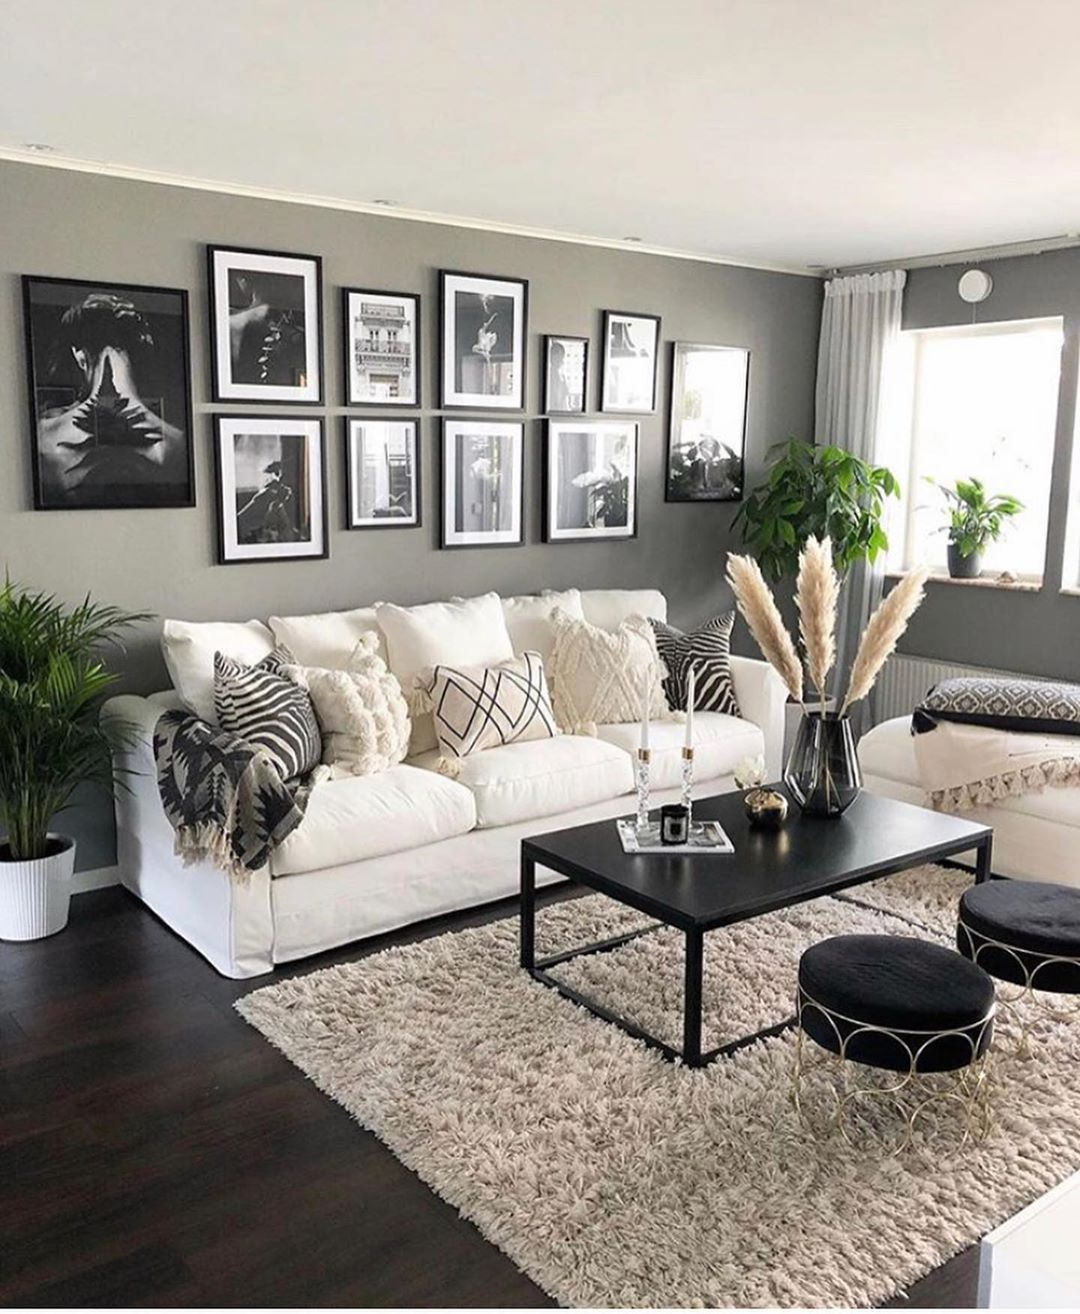 Beautiful Home Decor Inspiration The Welcoming Home Homedecor Livingroom Livingroomd Living Room Scandinavian Living Room Decor Apartment Living Room Decor #nice #decoration #living #room